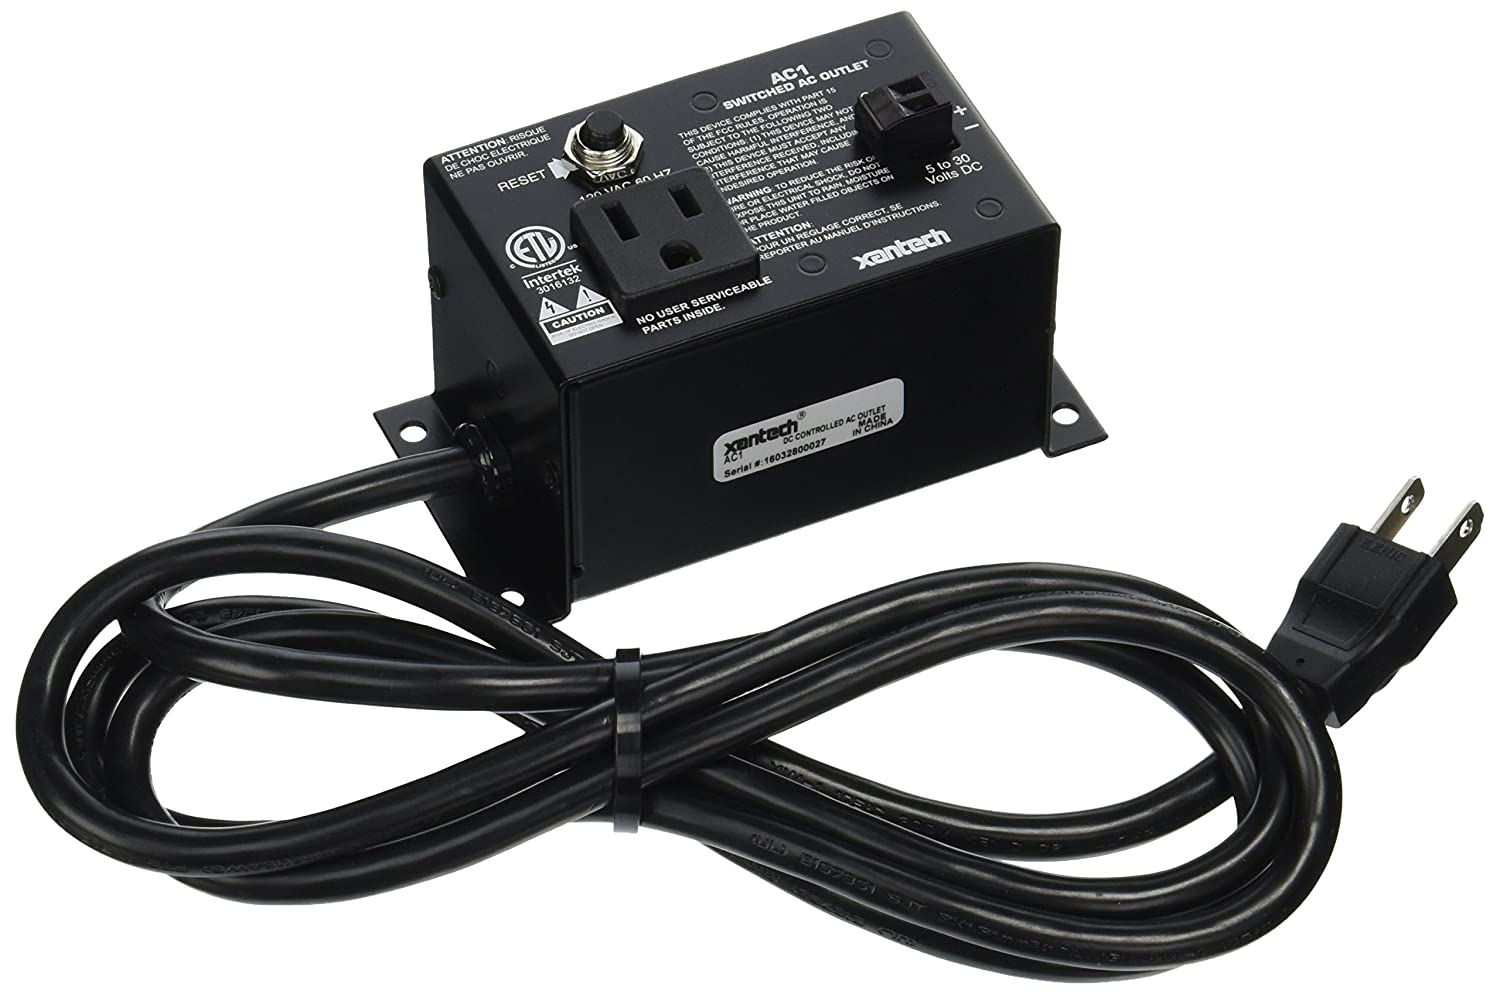 XANTECH AC1 Controlled AC Outlet (Discontinued by Manufacturer) on